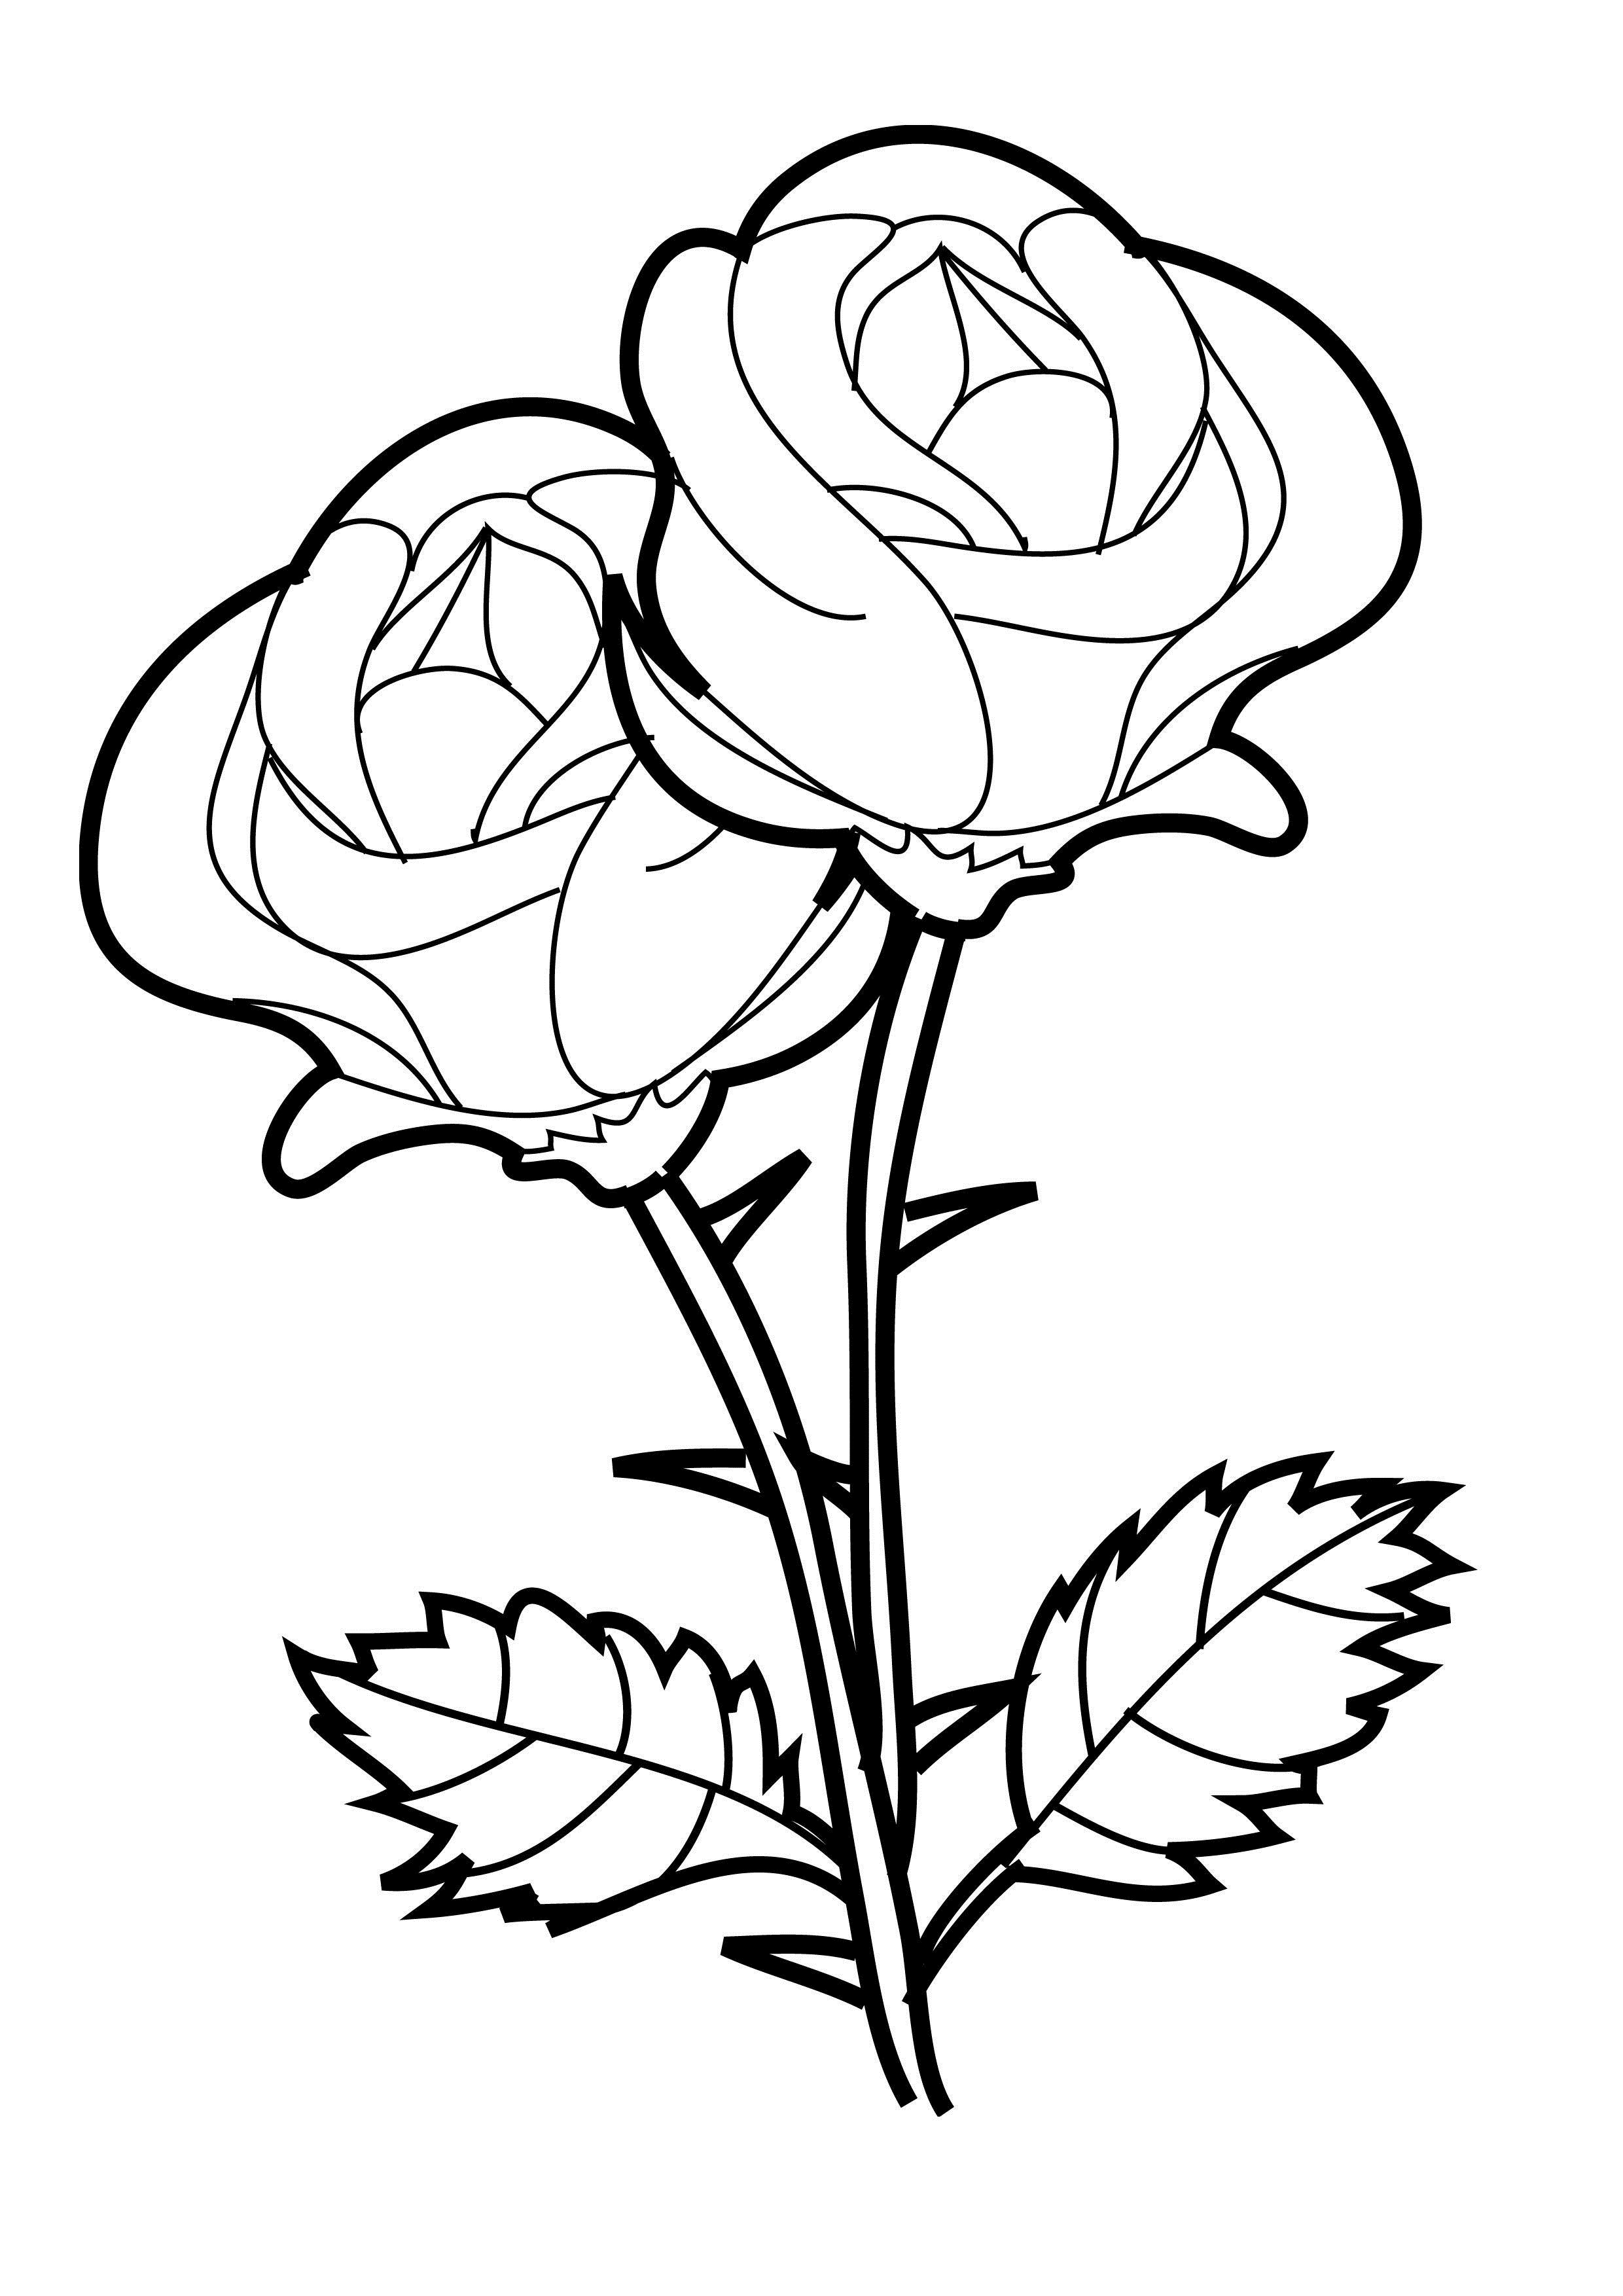 rose for coloring free printable roses coloring pages for kids rose coloring for